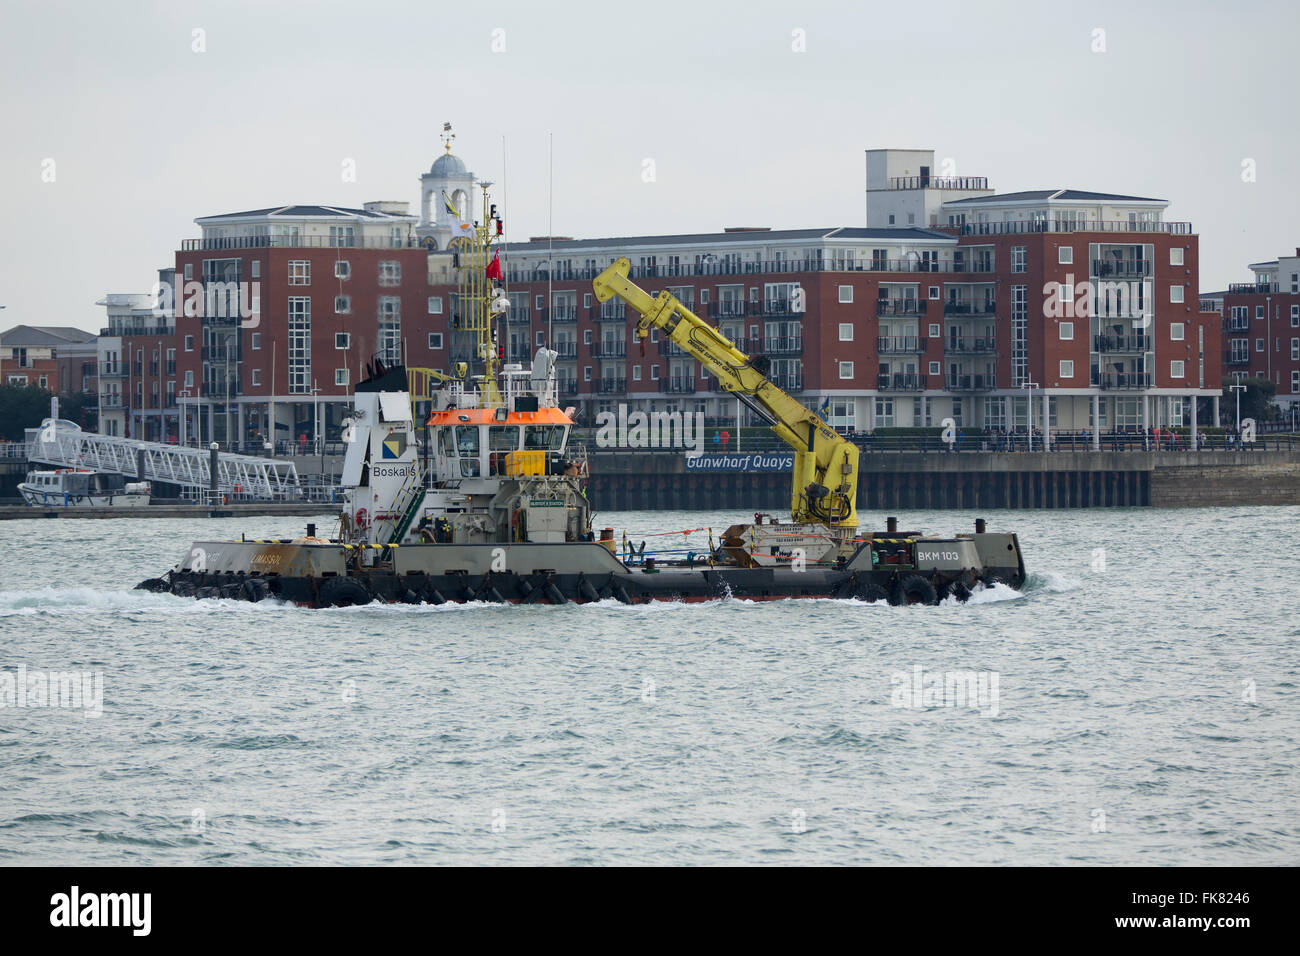 Dredger passing in front of Gunwharf Quays in Portsmouth. - Stock Image